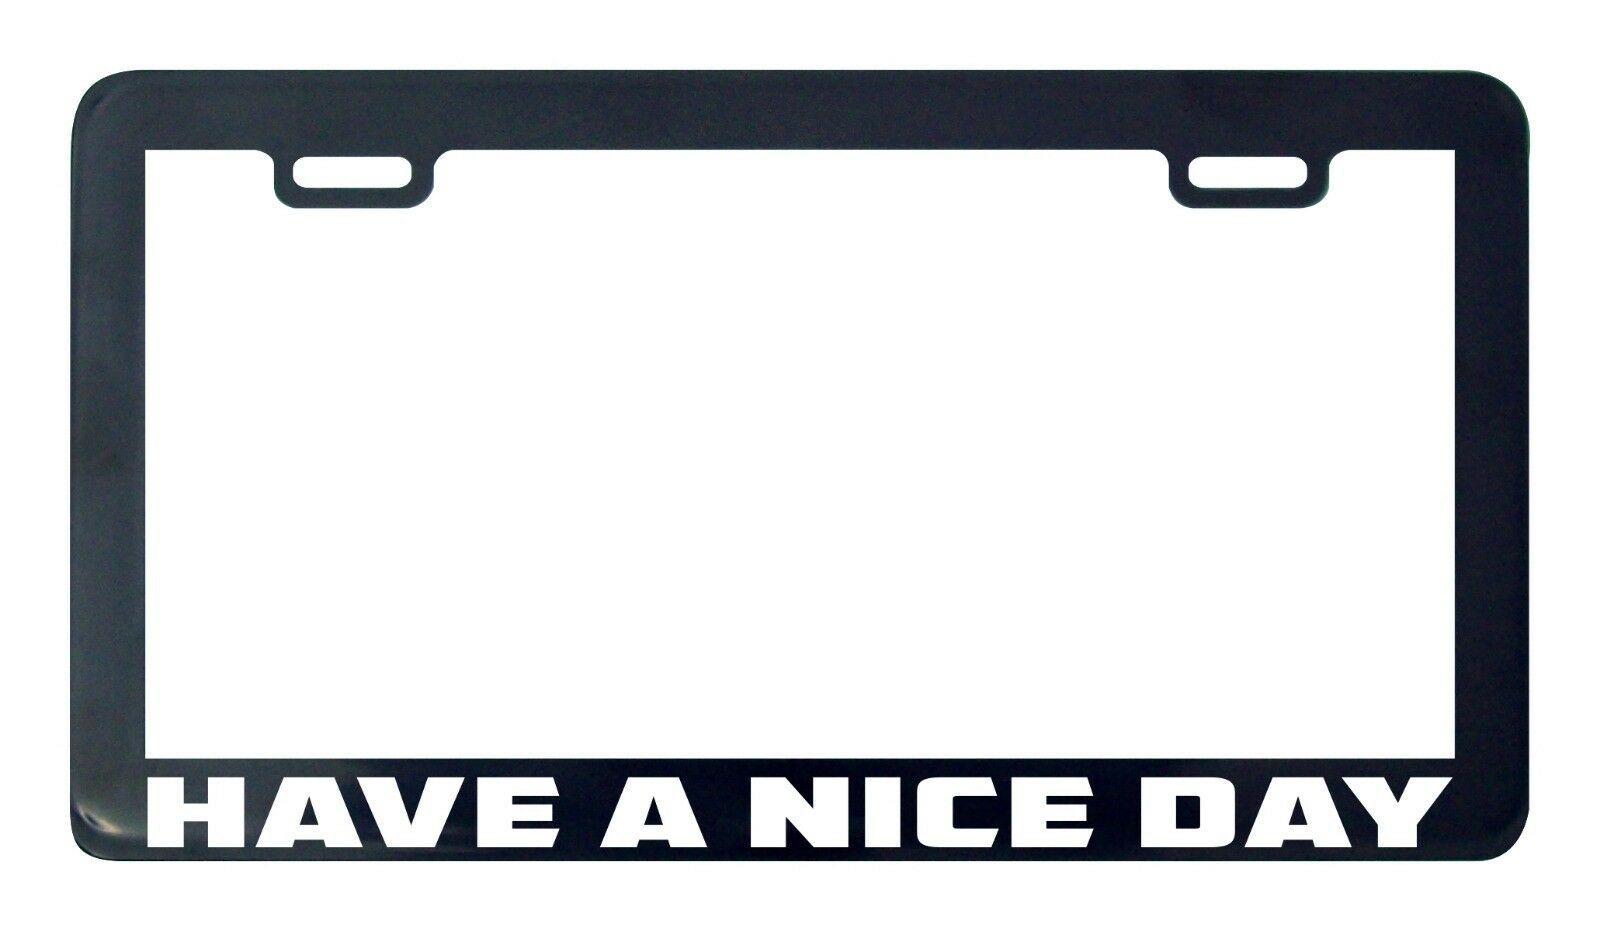 Primary image for Have a nice day license plate frame holder tag